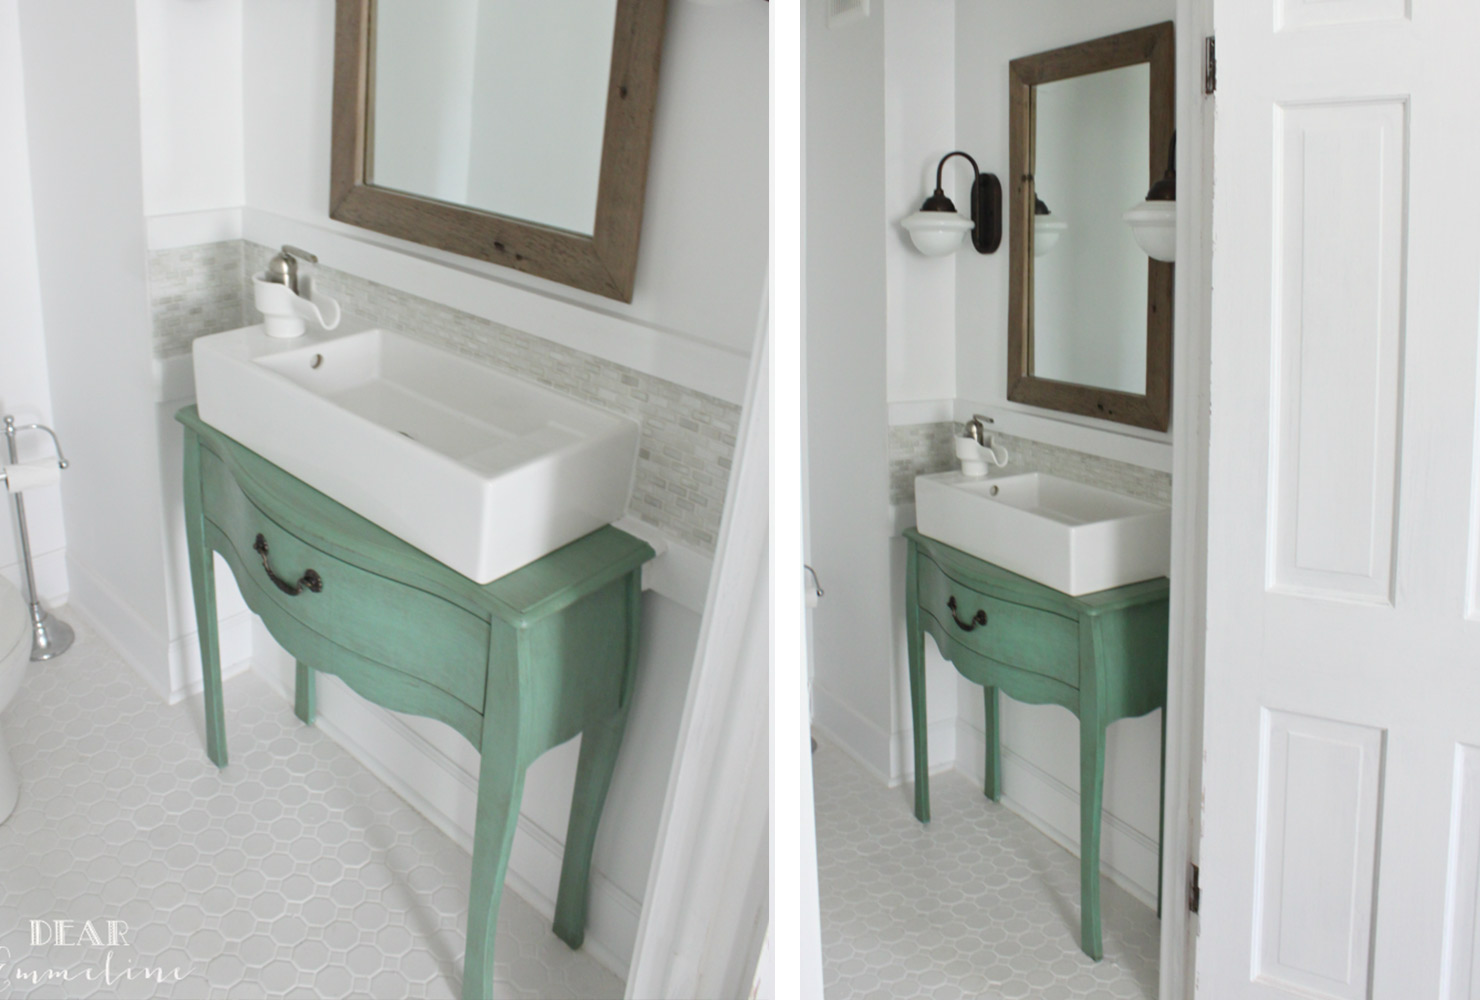 Bathroom Decoration Idea by Petal and Ply - Shutterfly